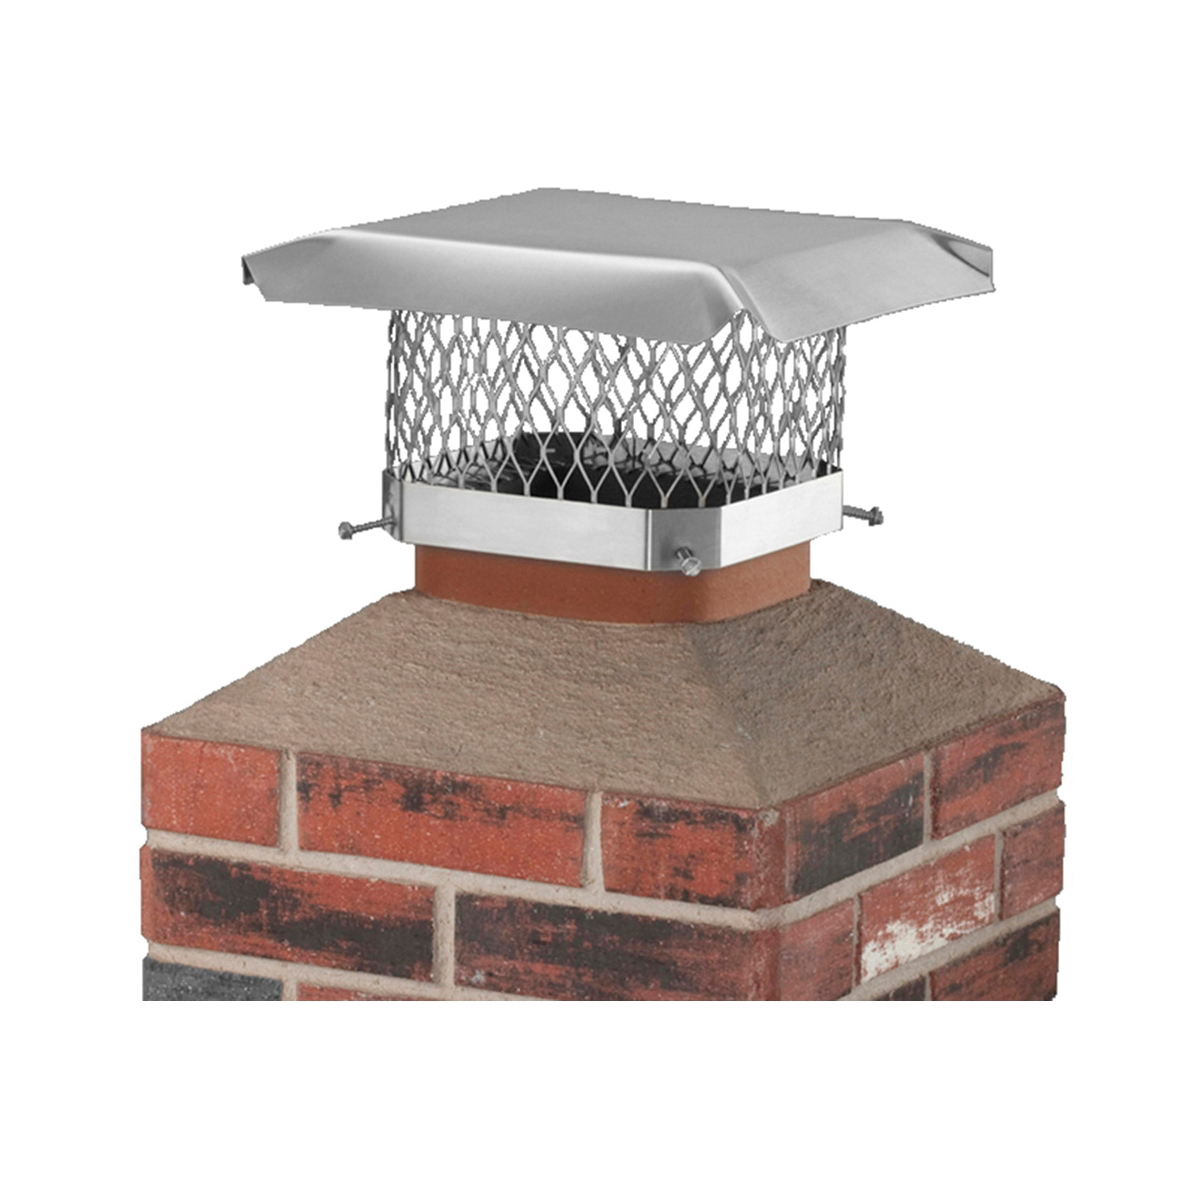 Picture of SHELTER SCSS99 Chimney Cap, Stainless Steel, Fits Duct Size: 7-1/2 x 7-1/2 to 9-1/2 x 9-1/2 in